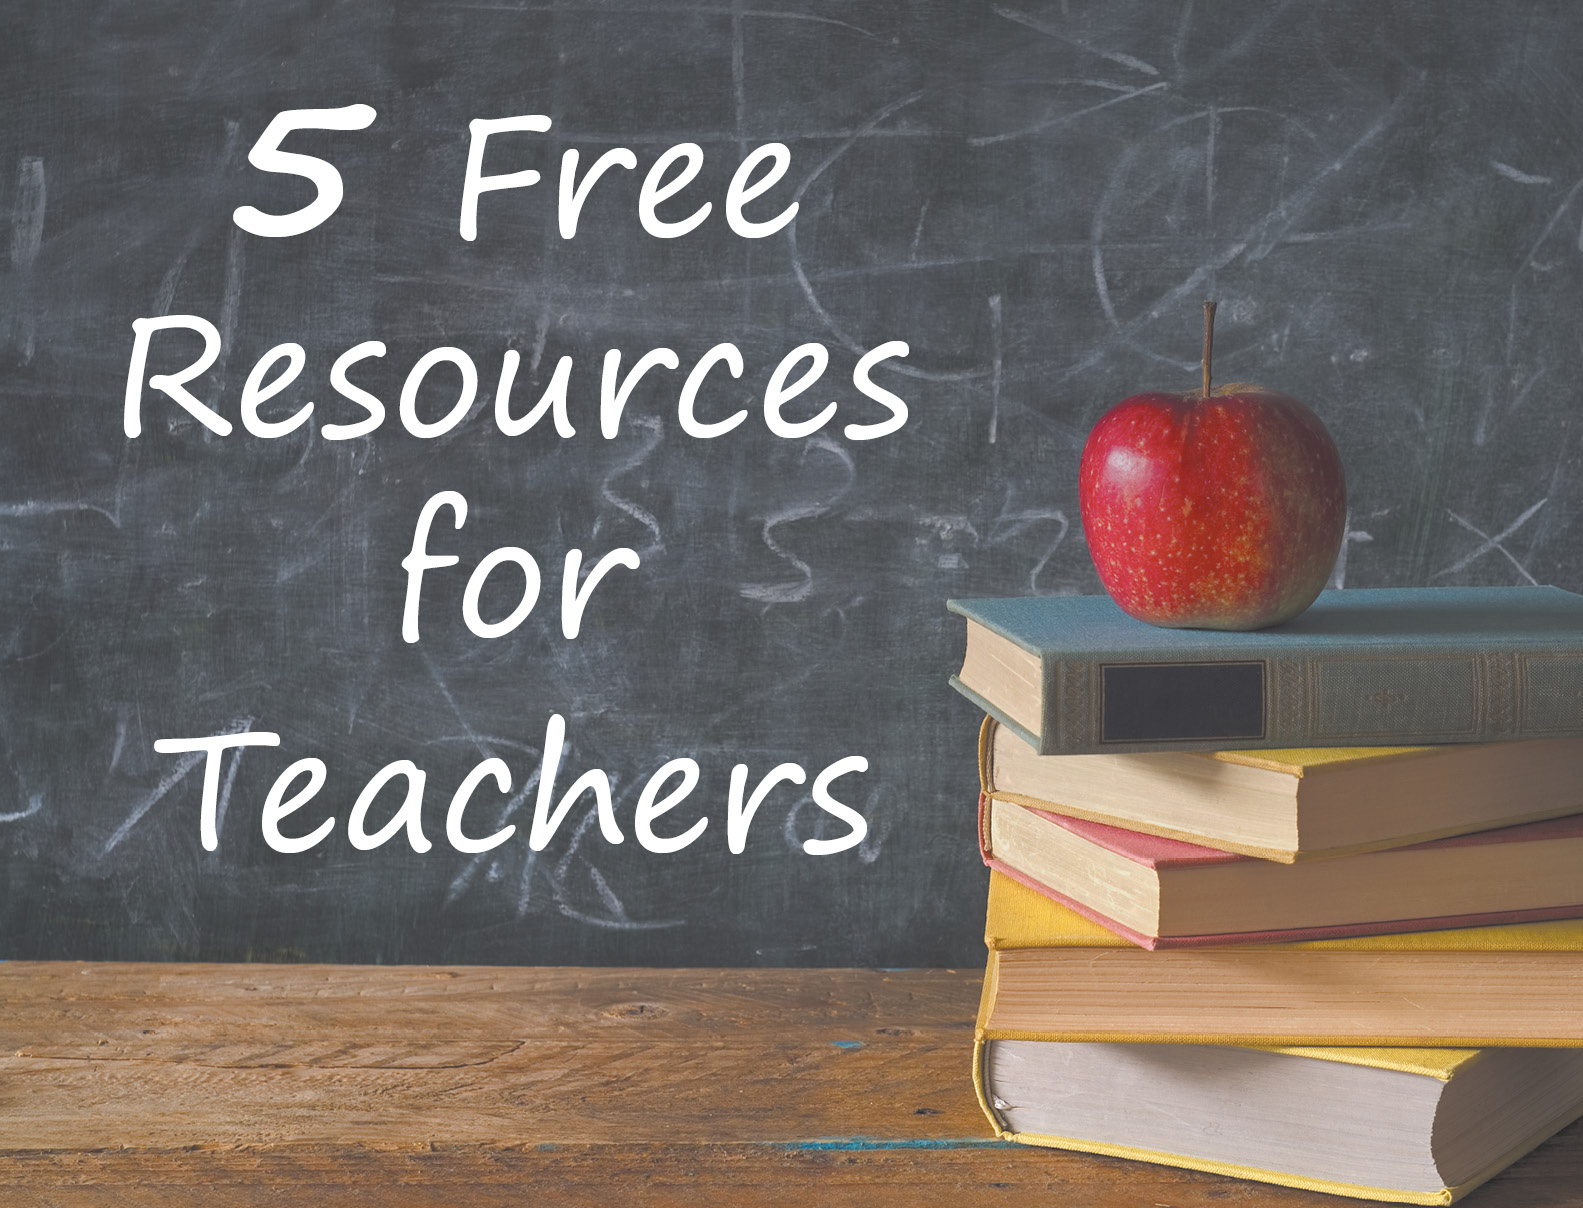 5 Free Resources For Teachers